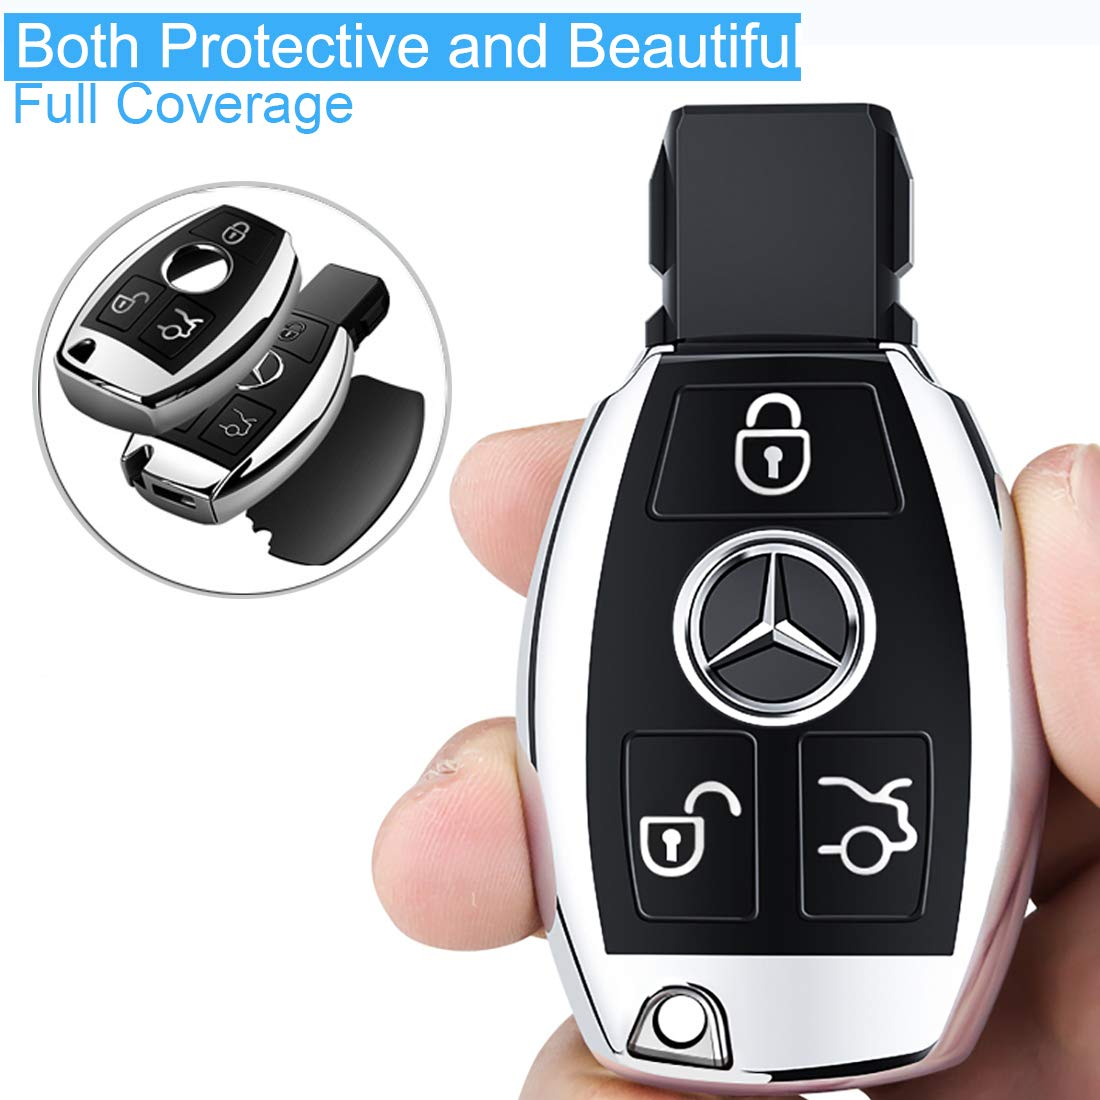 Intermerge for Mercedes Benz Key Fob Cover Premium Soft TPU Key Case Cover Compatible with Mercedes Benz C E S M CLS CLK G Class Keyless Smart Key Fob/_Silver Color